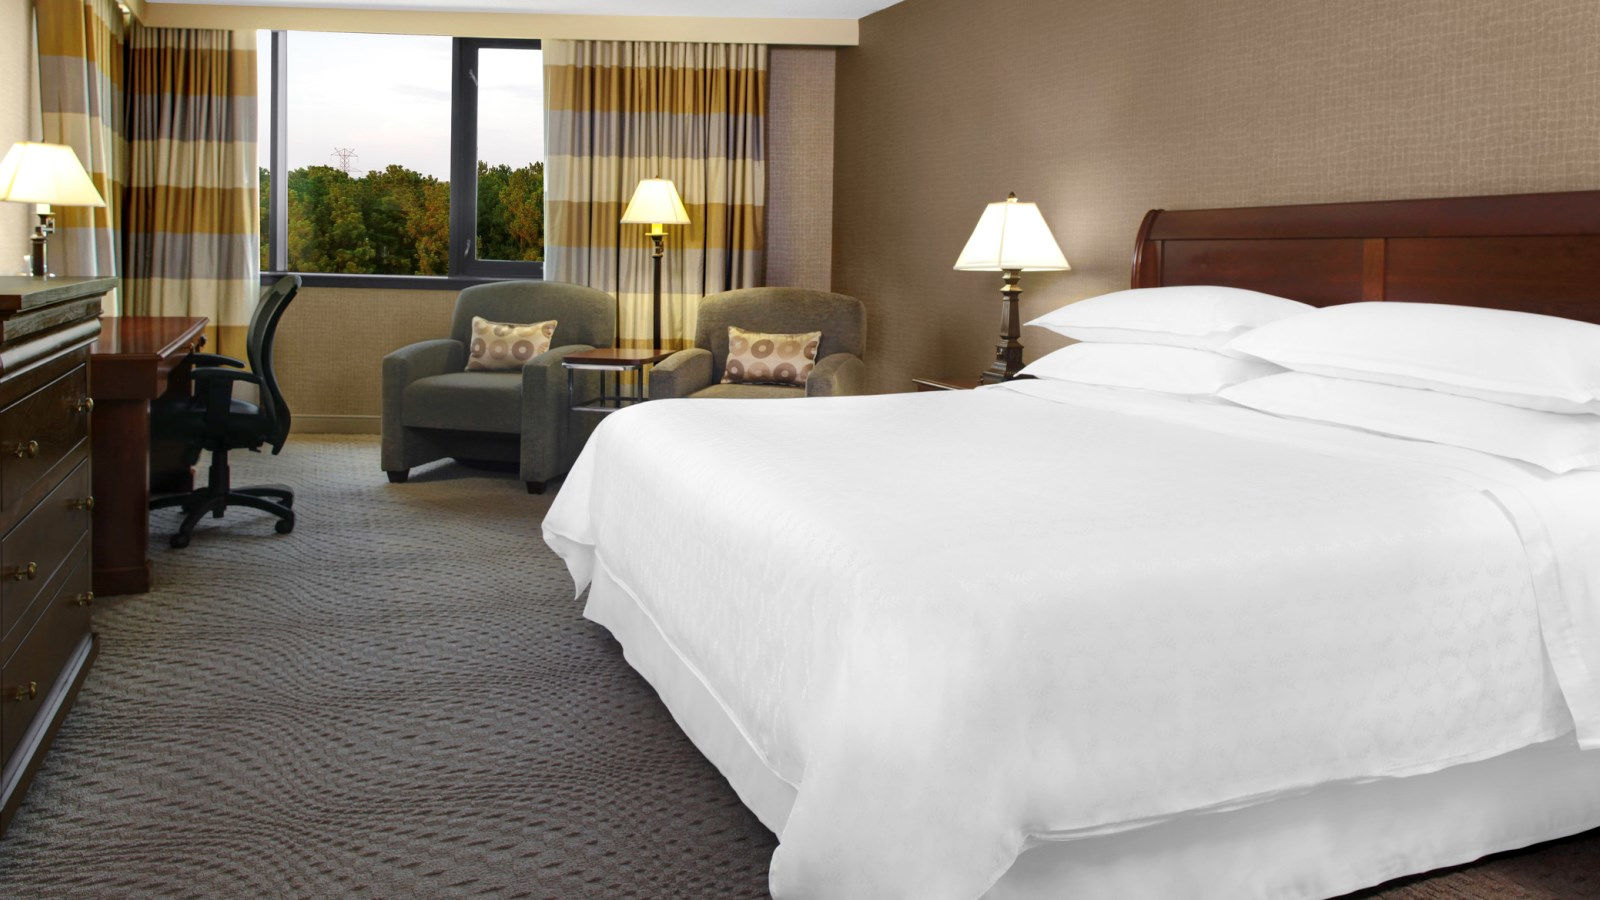 Sheraton Imperial Hotel Raleigh-Durham Airport at Research Triangle Park - Room